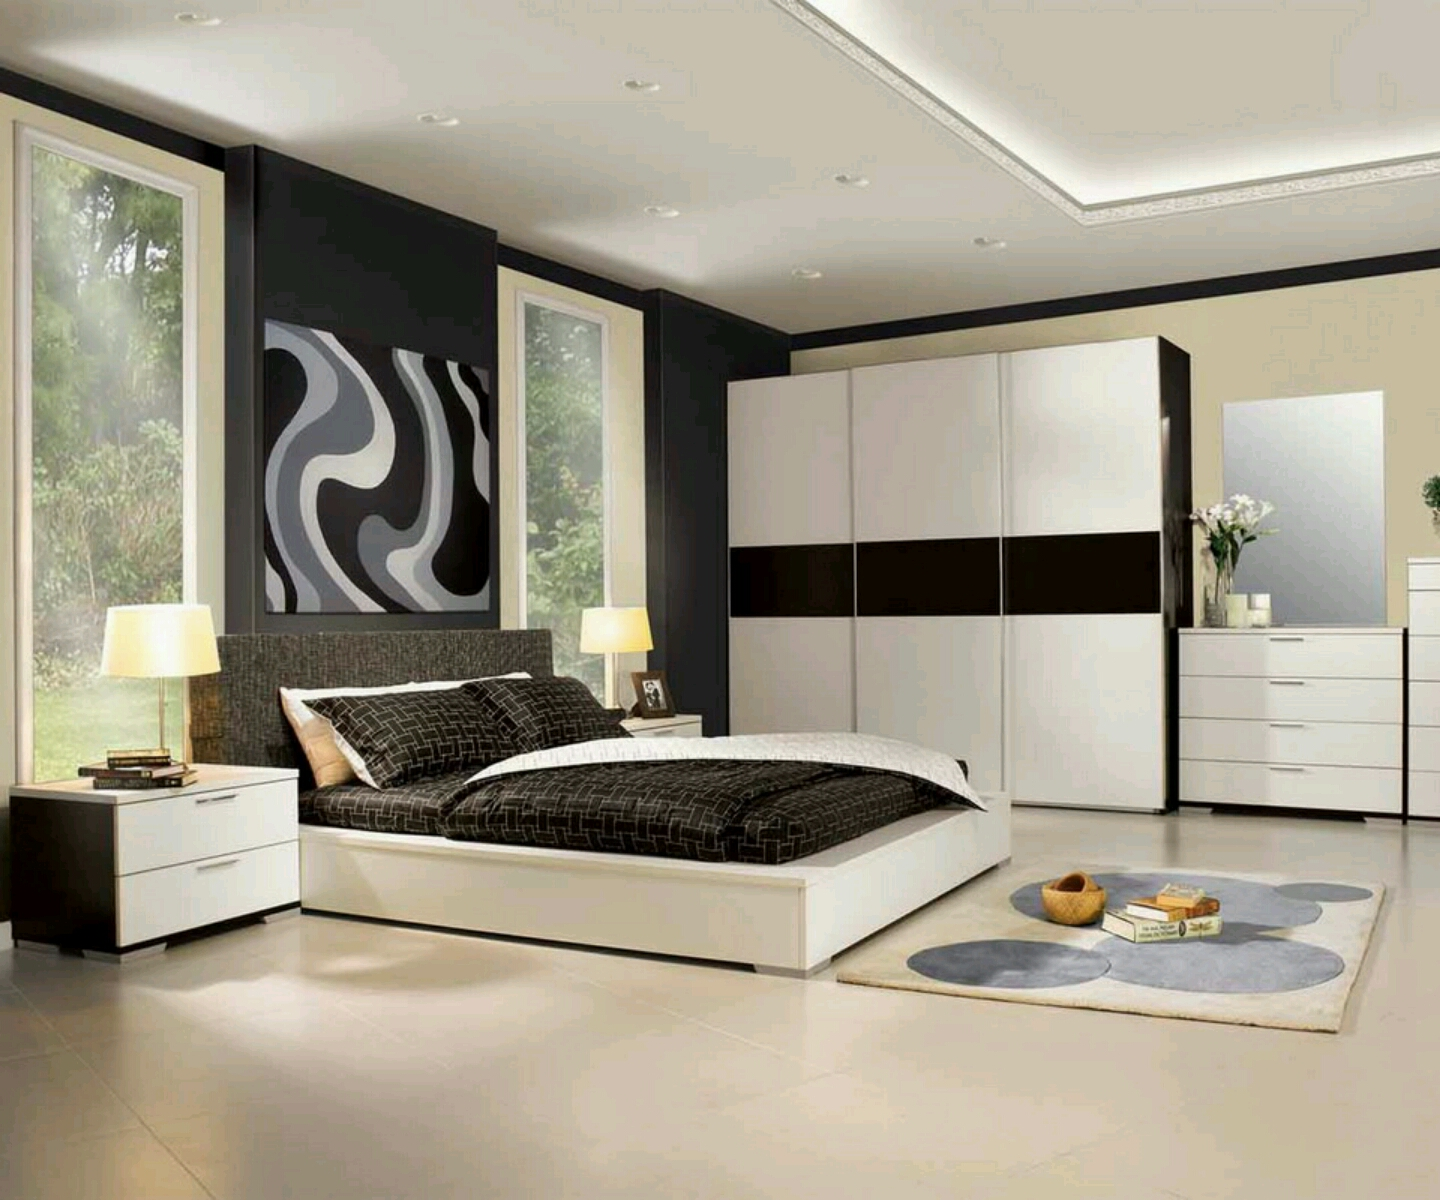 Http Vintageromantichome Blogspot Fr 2012 12 Modern Luxury Bedroom Furniture Designs Html